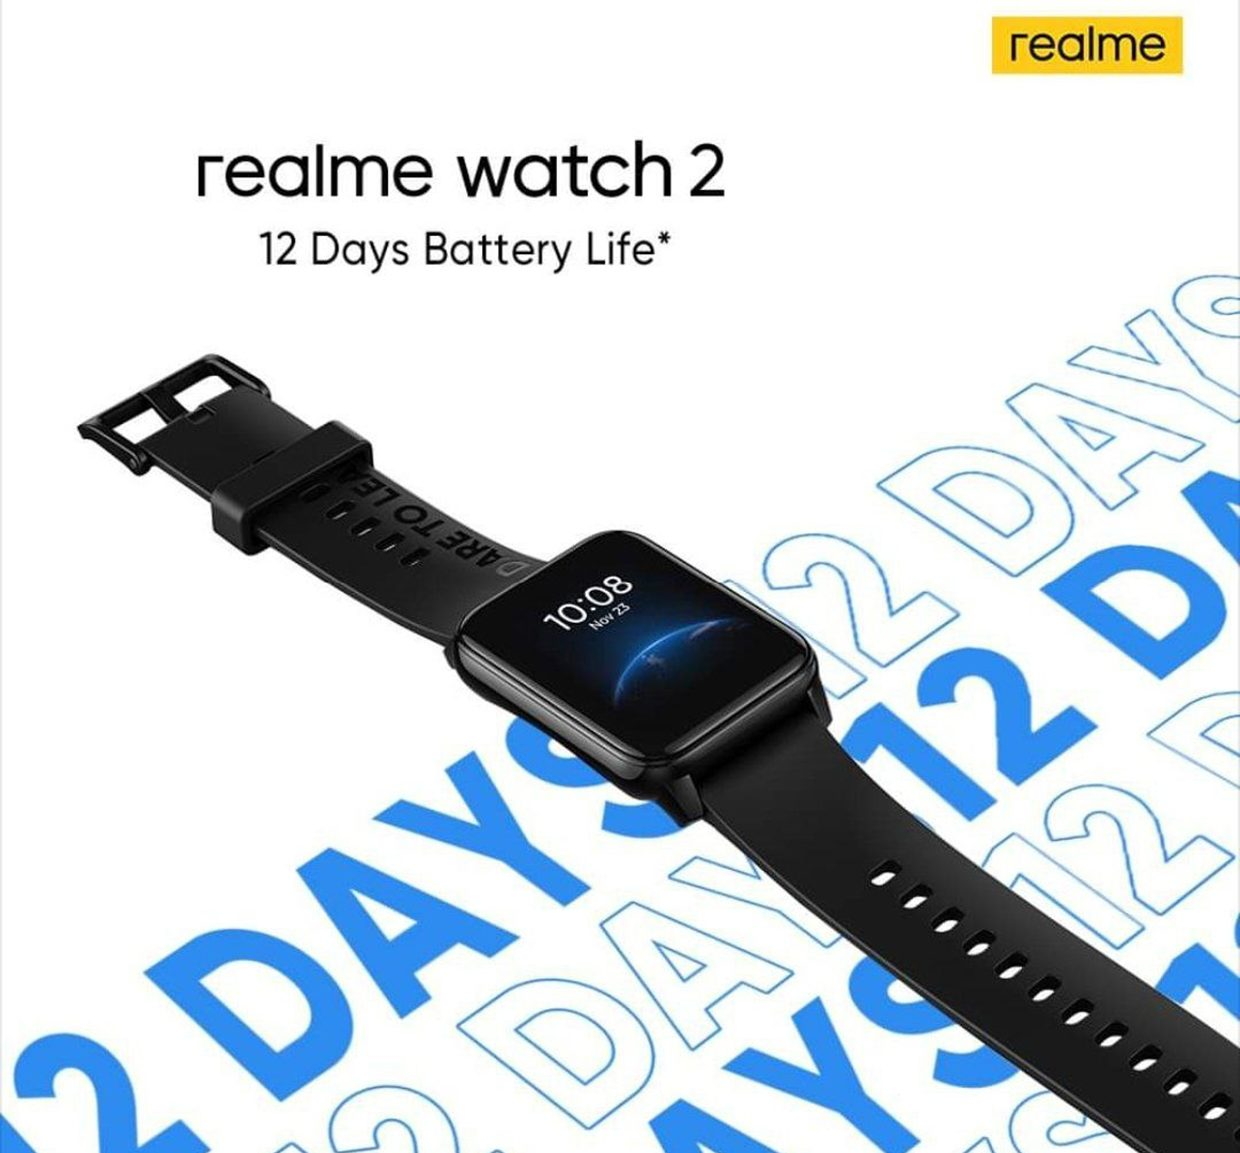 Realme Watch 2: 12 Day Ending Device Is Coming Soon